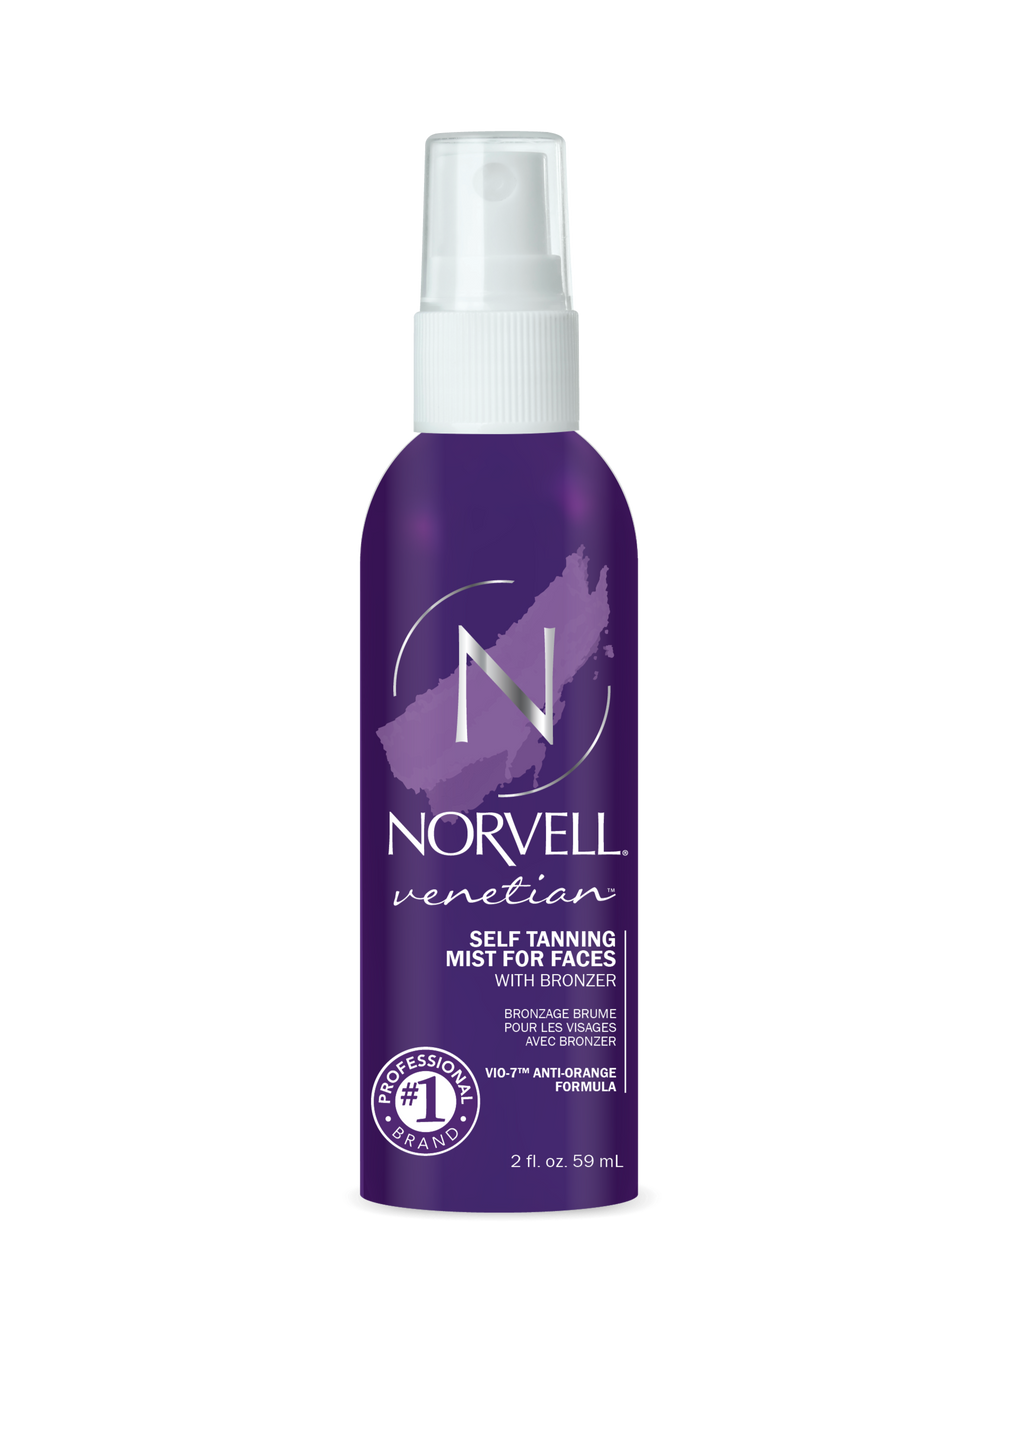 Norvell Venetian 4-Faces Sunless Facial Self-Tanning & Touch-up Spray, 2 fl.oz